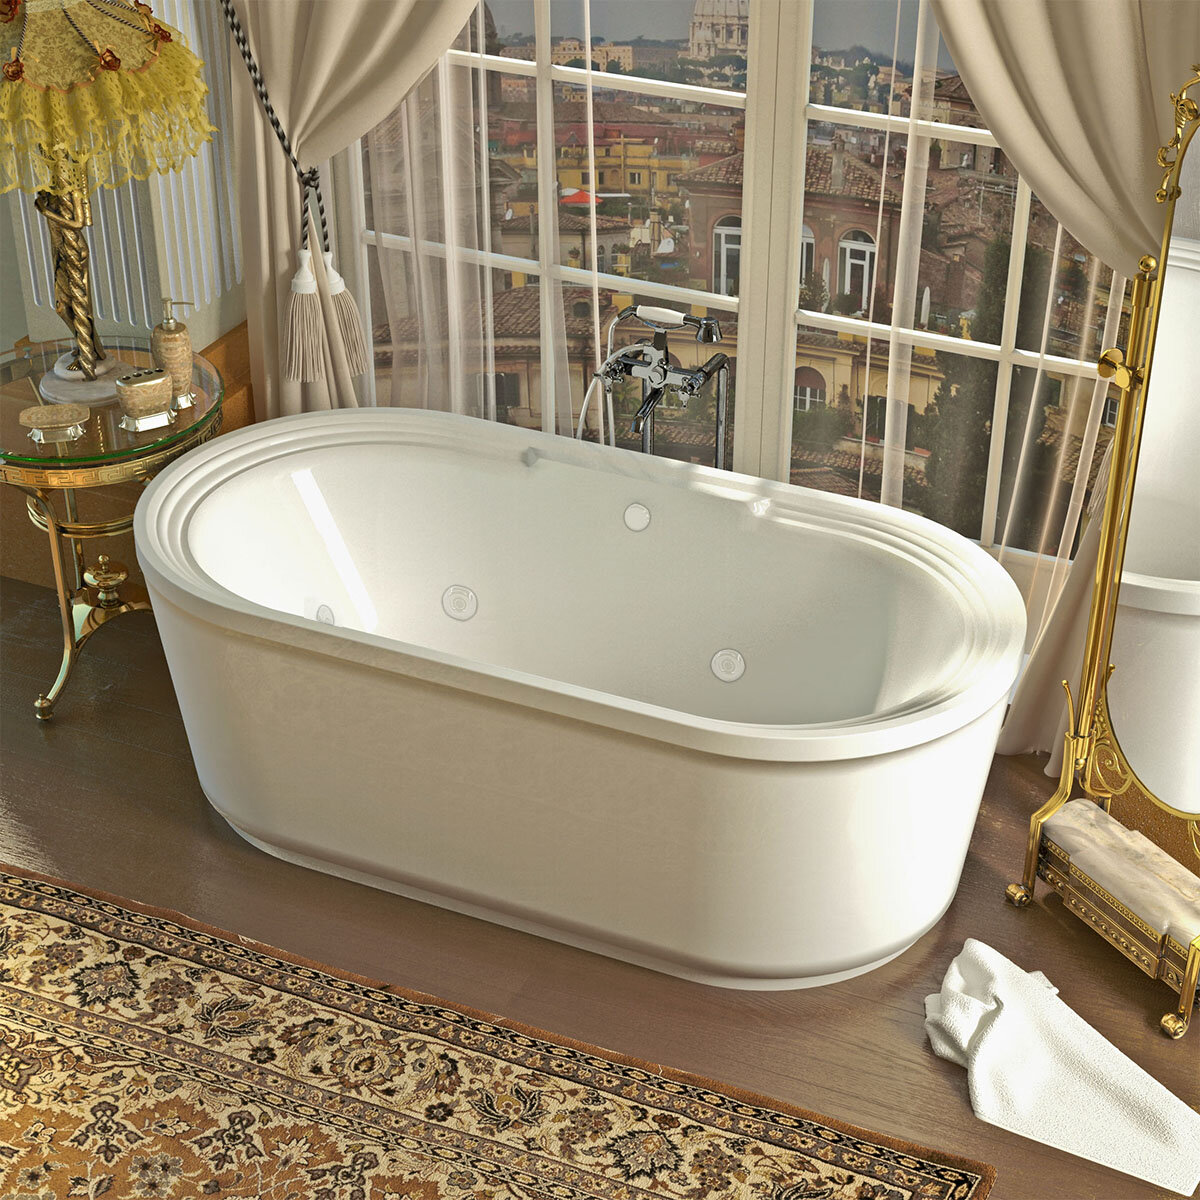 Spa Escapes Royal 66 78 X 33 62 Oval Freestanding Jetted Bathtub